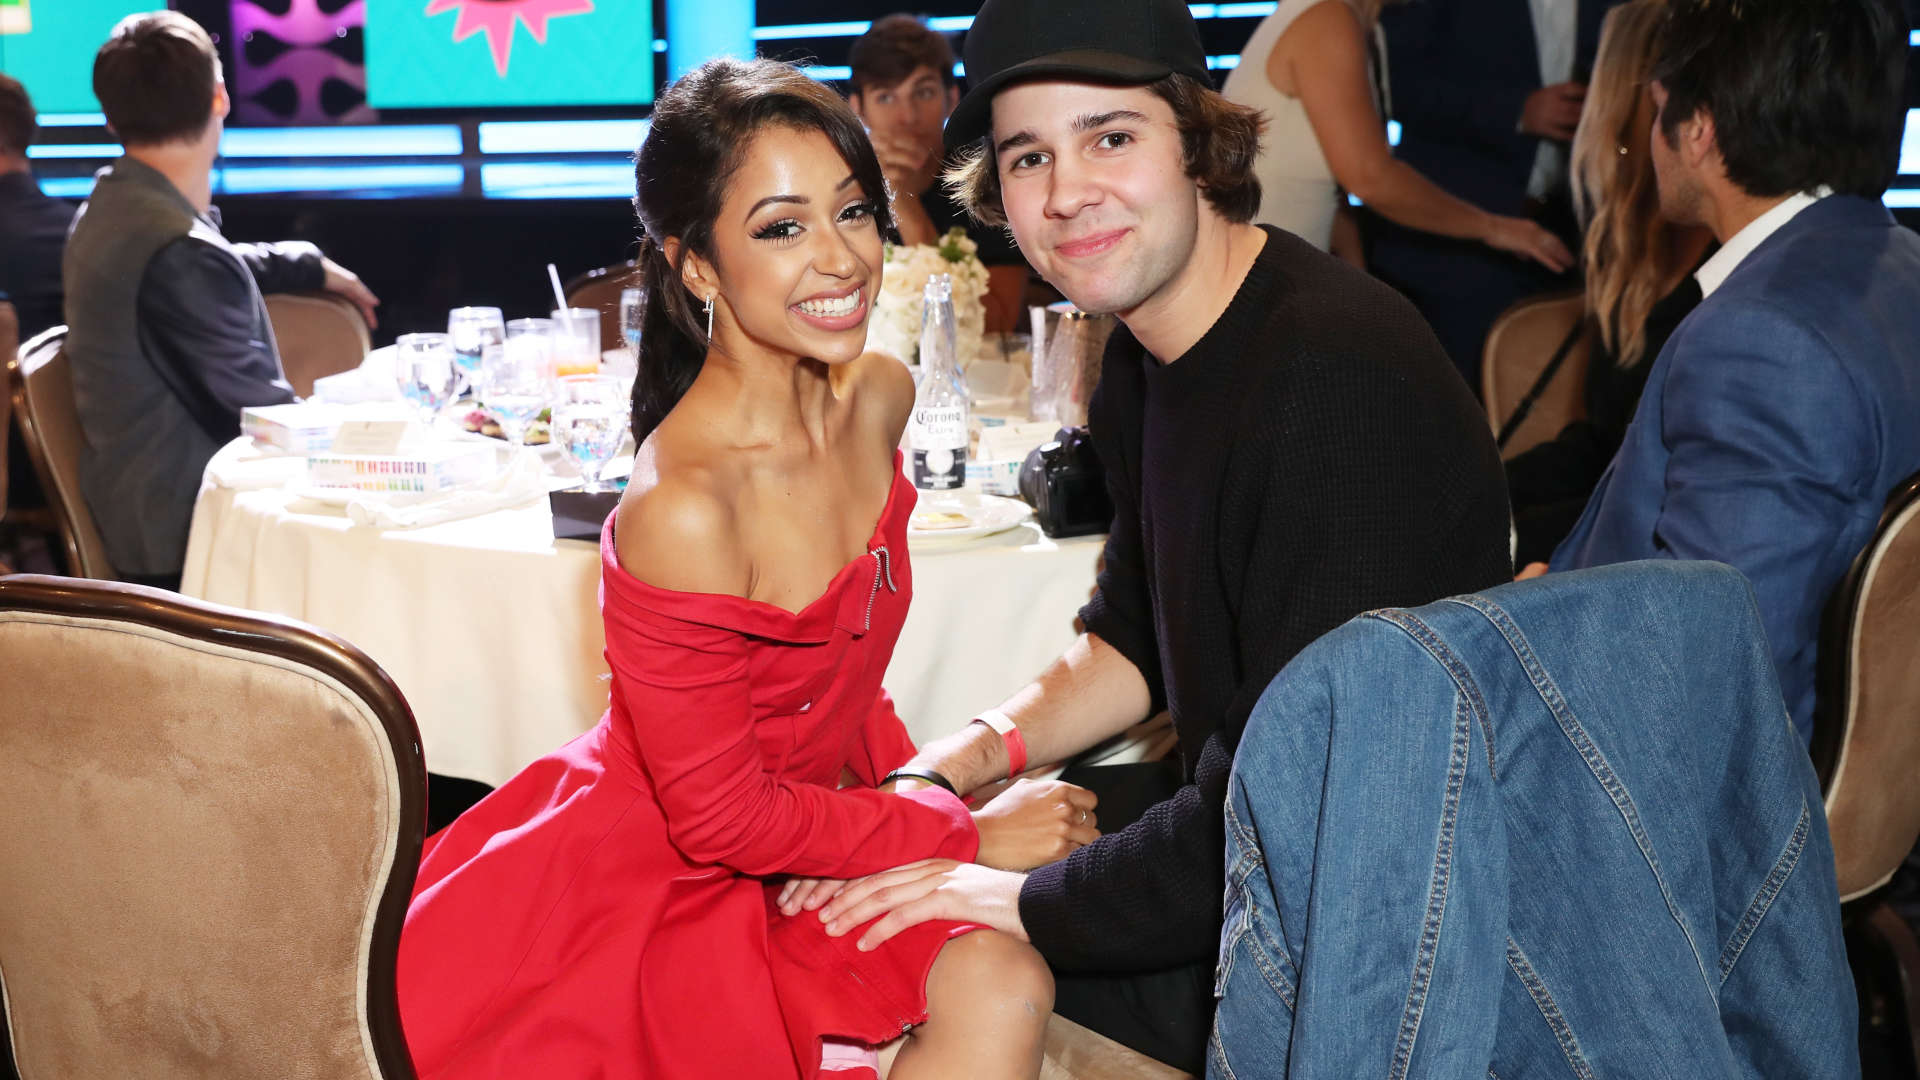 Liza Koshy David Dobrik Wallpaper